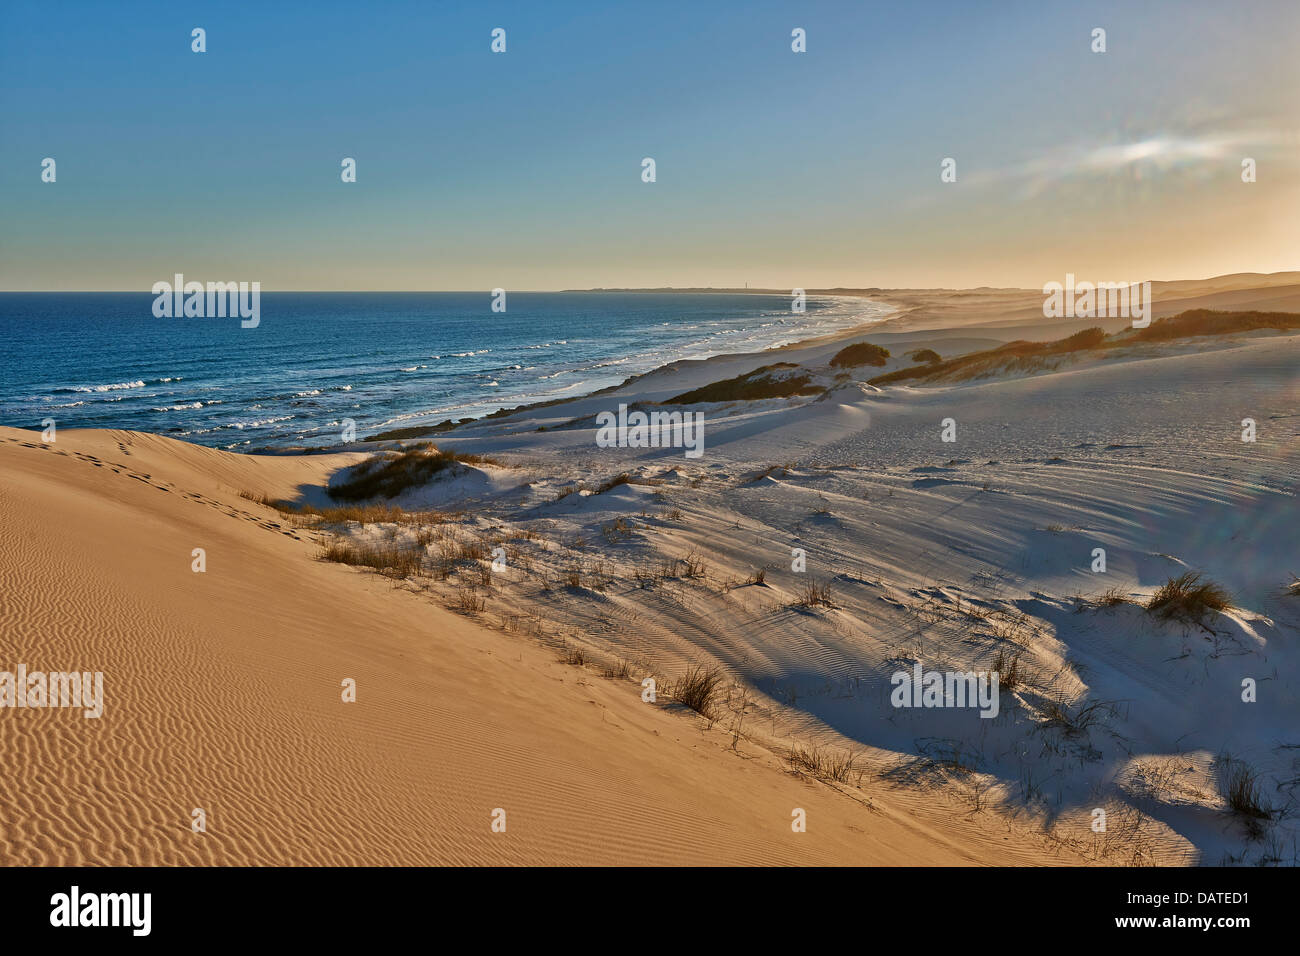 dunes and beach in De Hoop Nature Reserve, Western Cape, South Africa - Stock Image